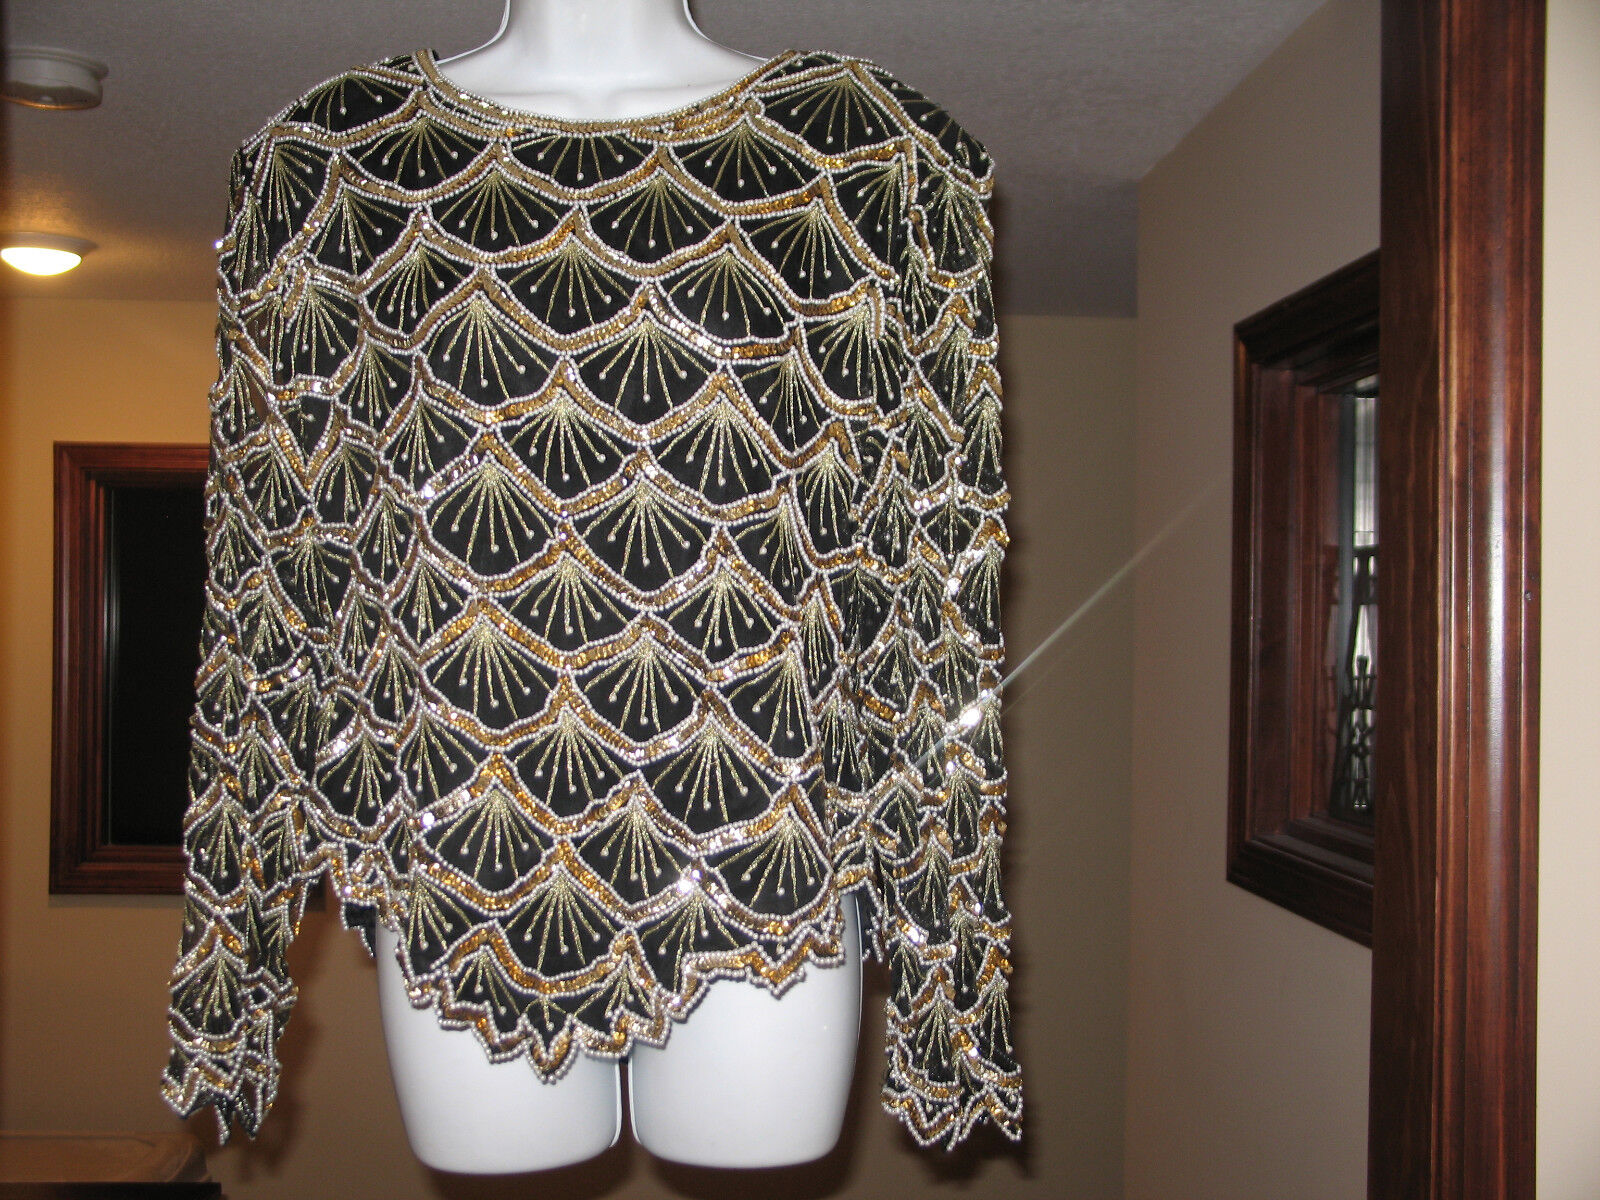 XXL GORGEOUS   LAURENCE KAZAR PEARL BEADS SPARKLING SEQUINS HOLIDAY PARTY TOP